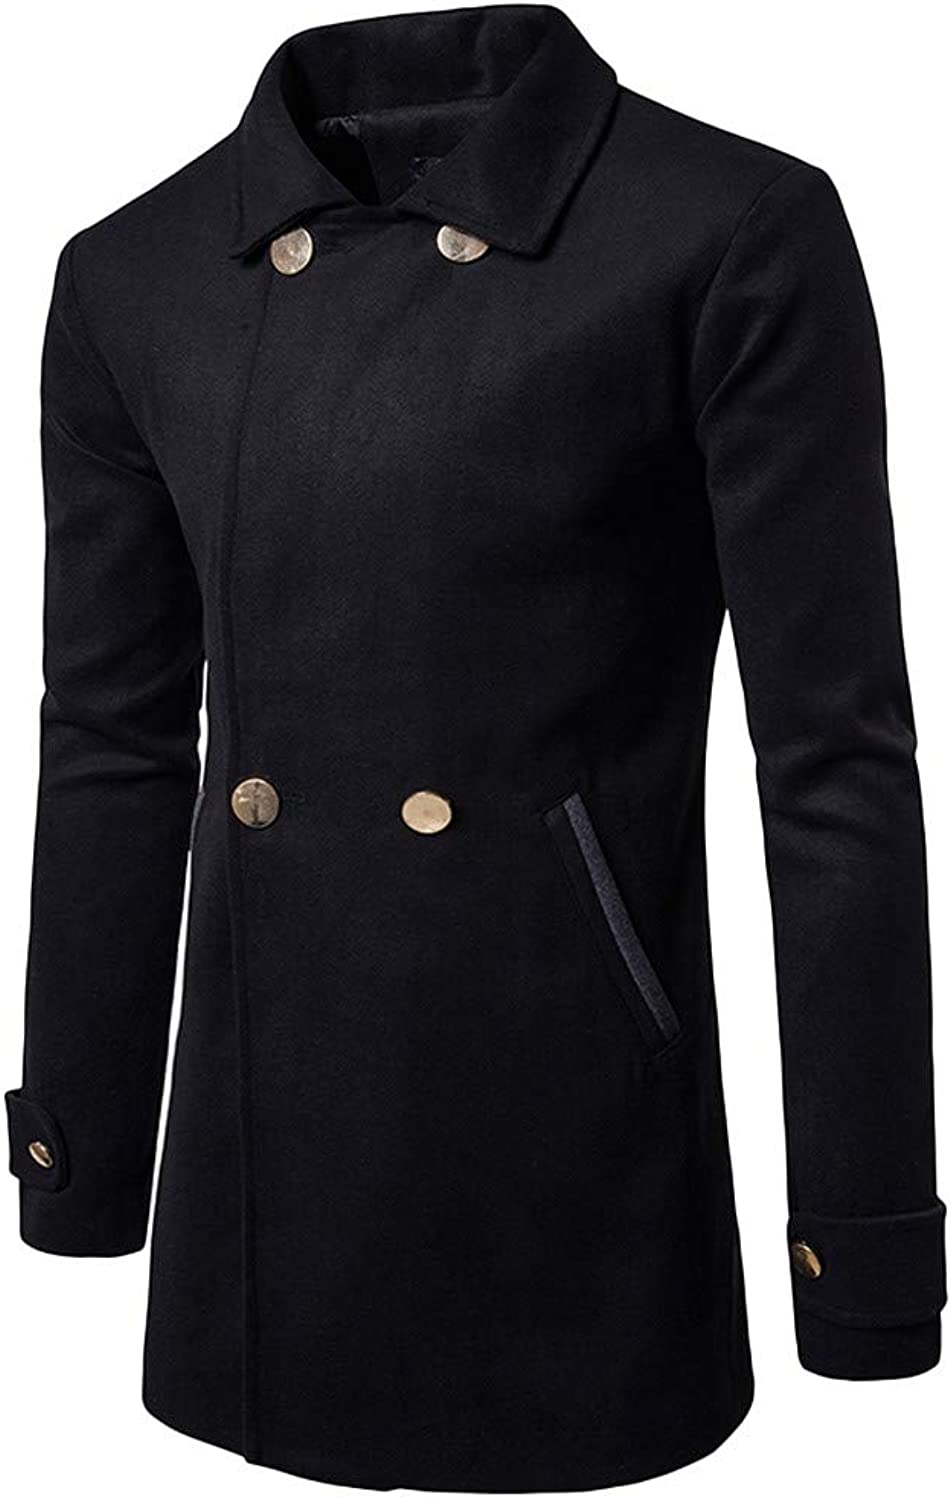 Jiayit Double Breasted Peacoat Men's Trench Coat Wool Business Winter Long Overcoat